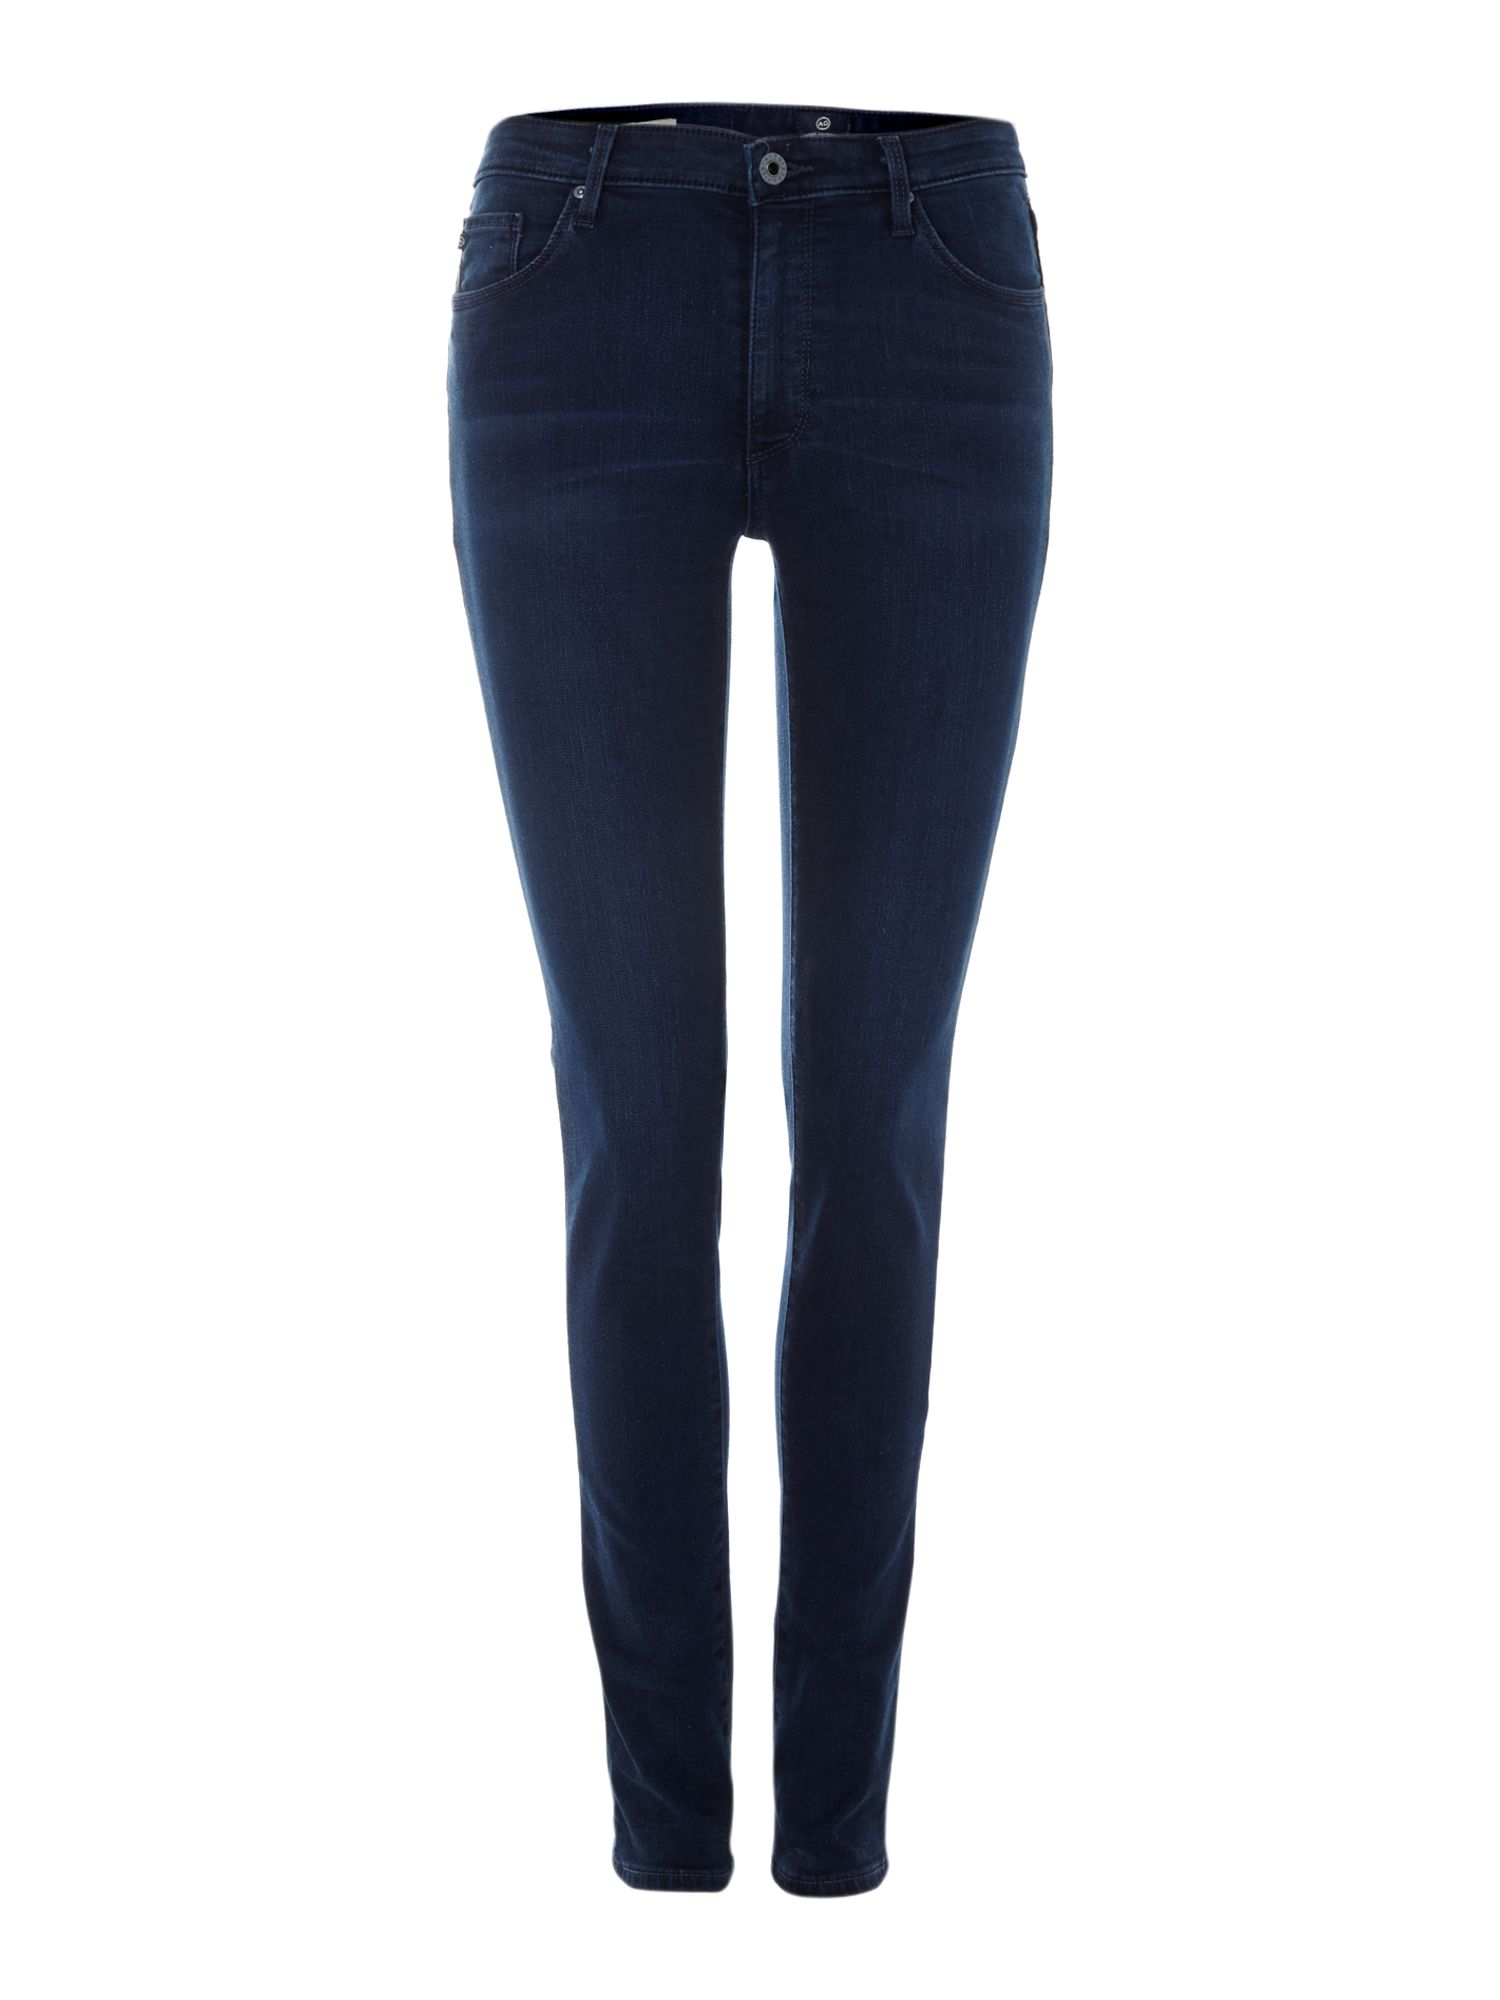 The Middi mid-rise legging jeans in Figaro